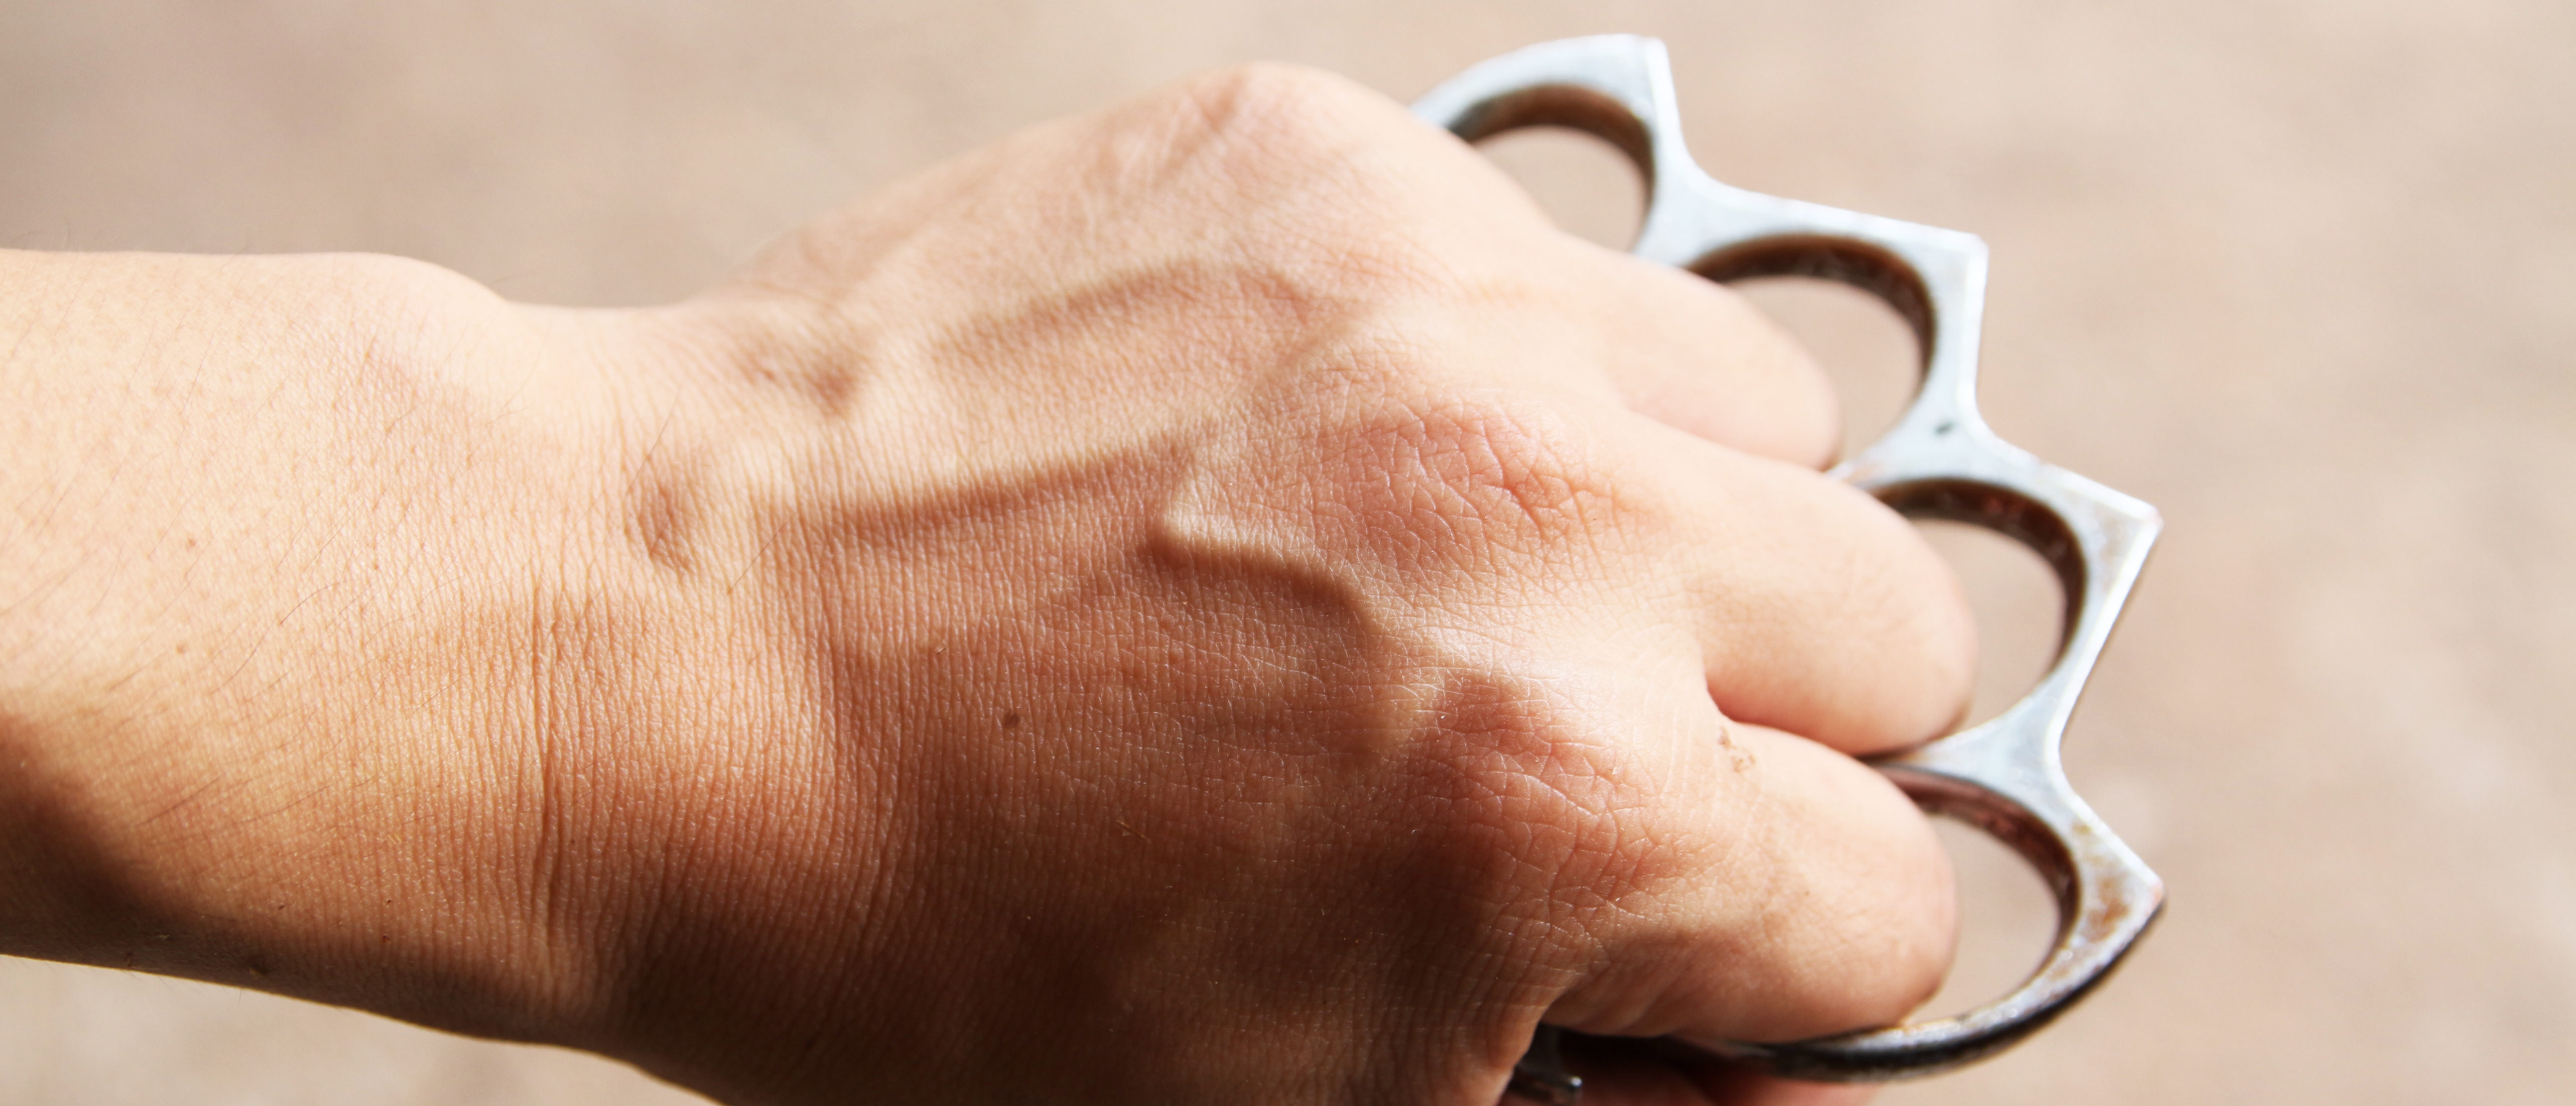 Texas Self-defense Bill Legalizes Carrying Brass Knuckles in Public. Photo by Shutterstock.